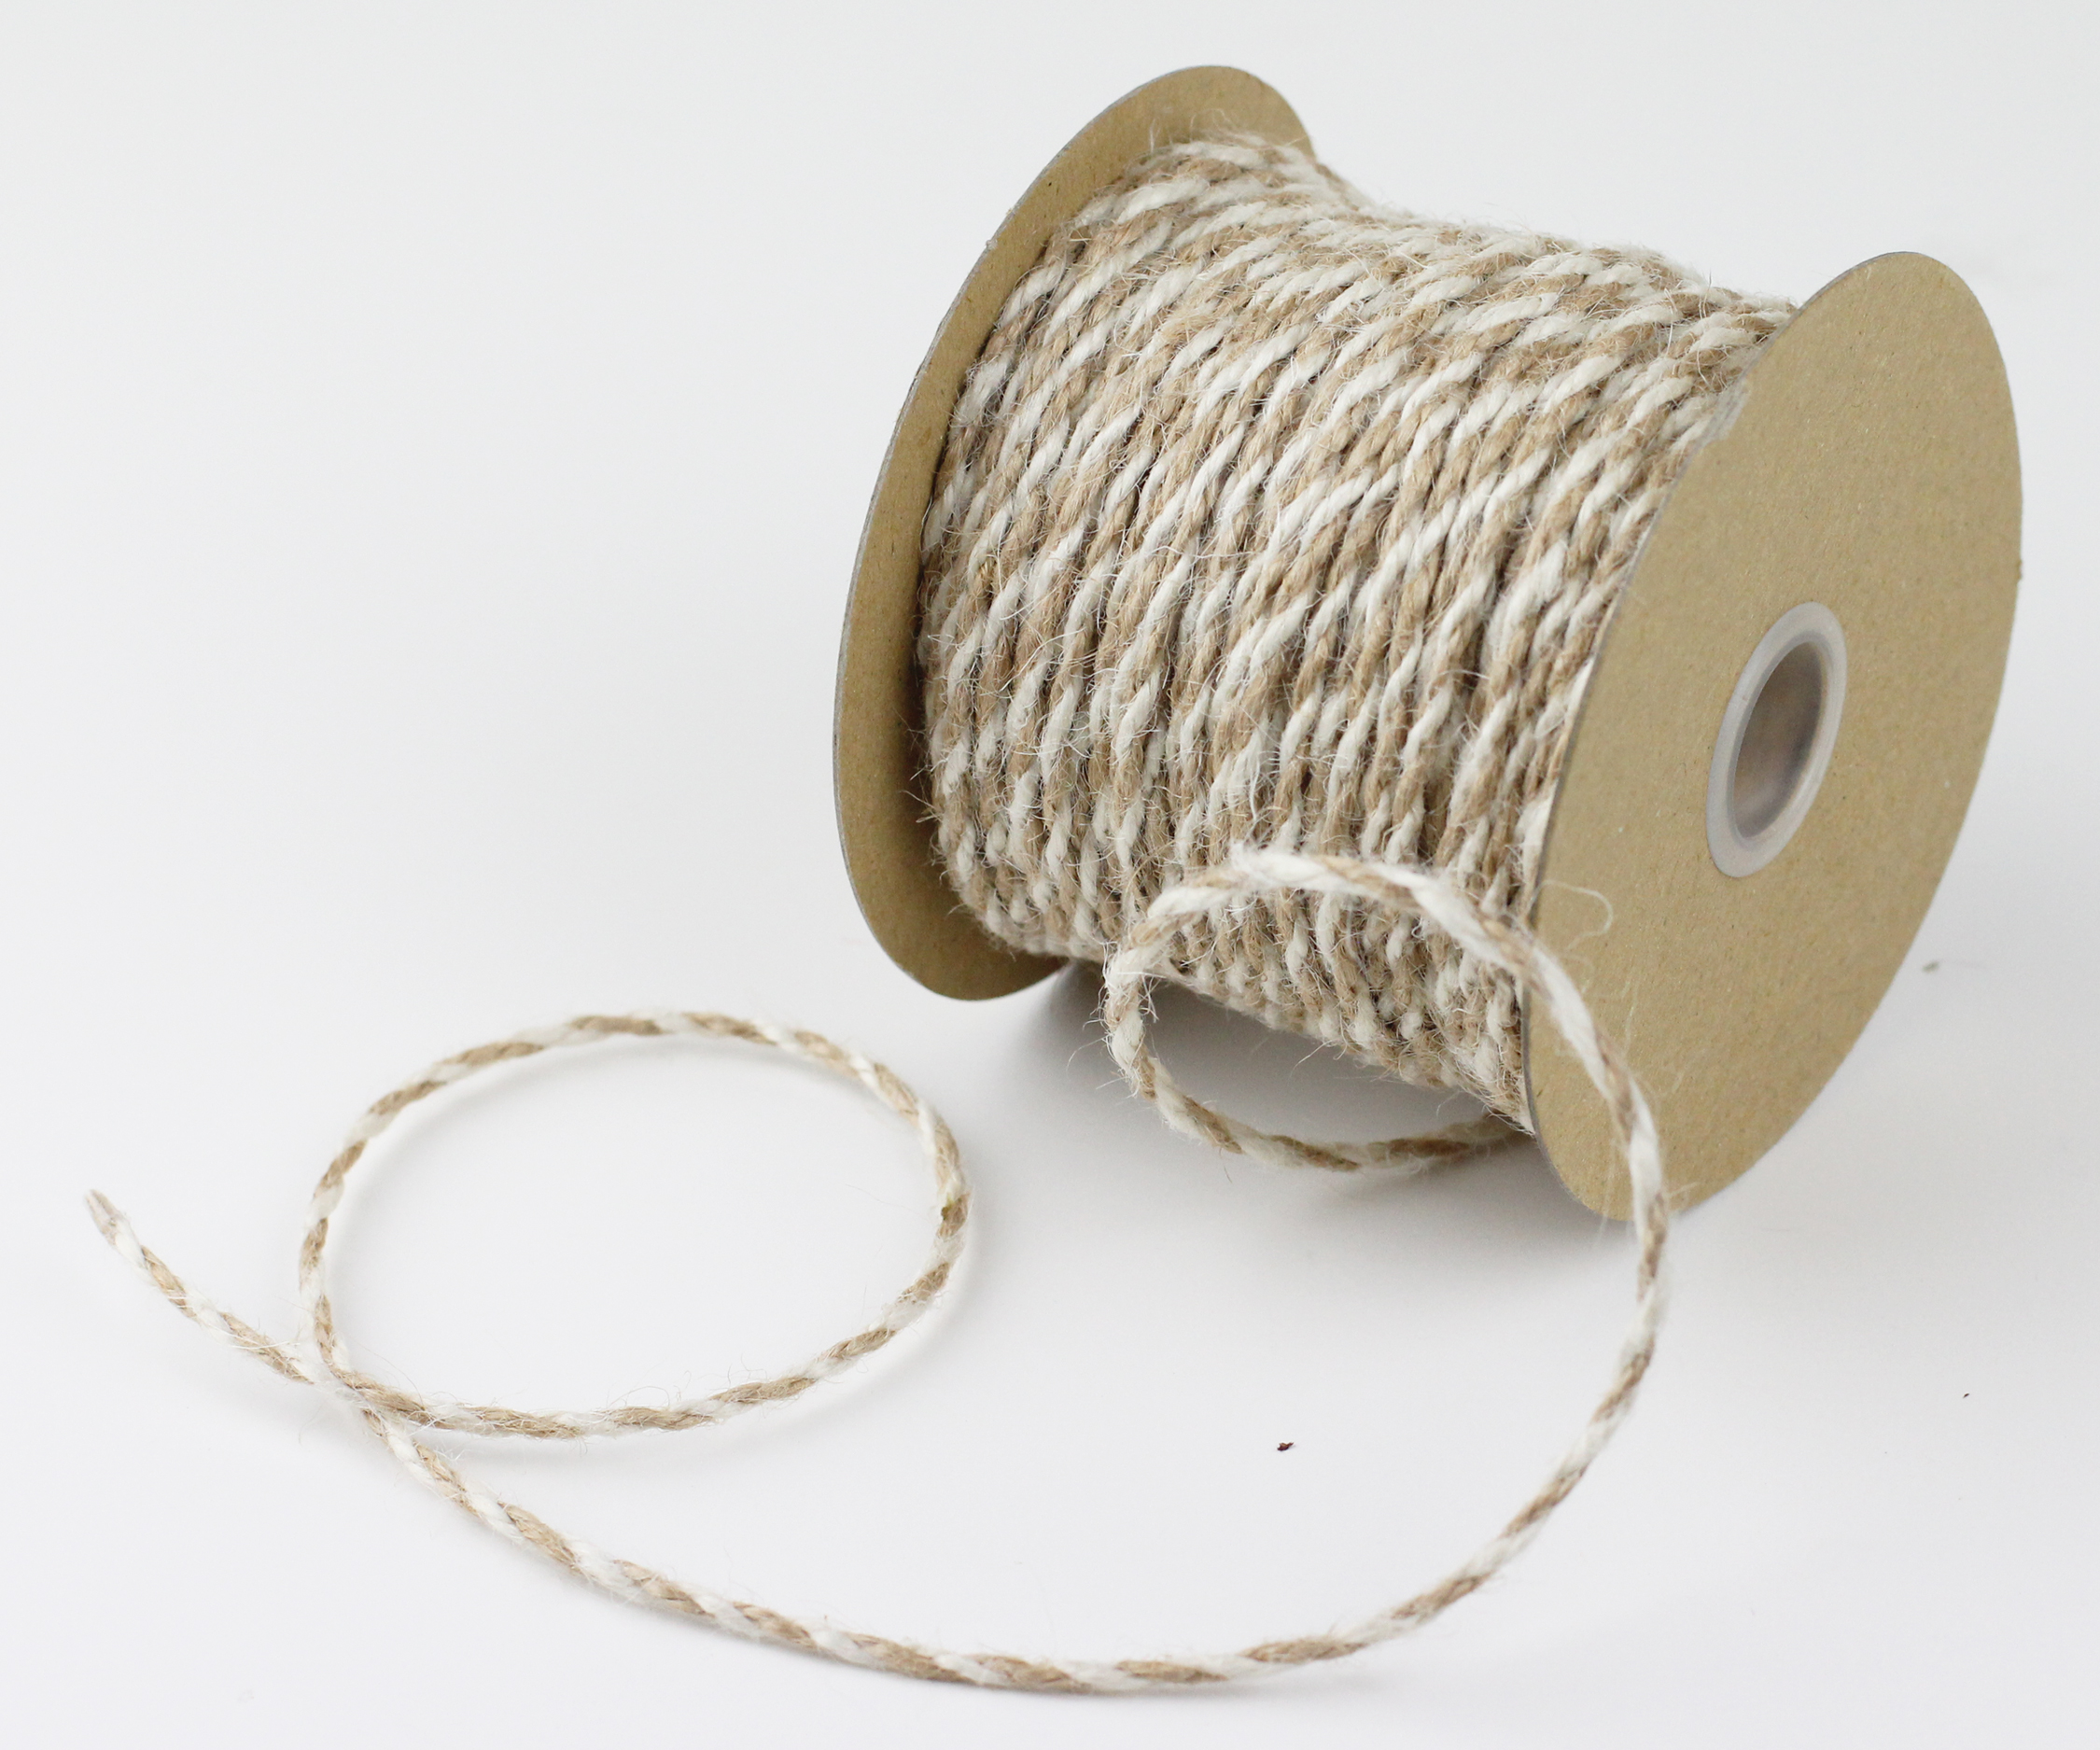 Ivory/Natural Jute Twine - 2.5mm x 50 Yards